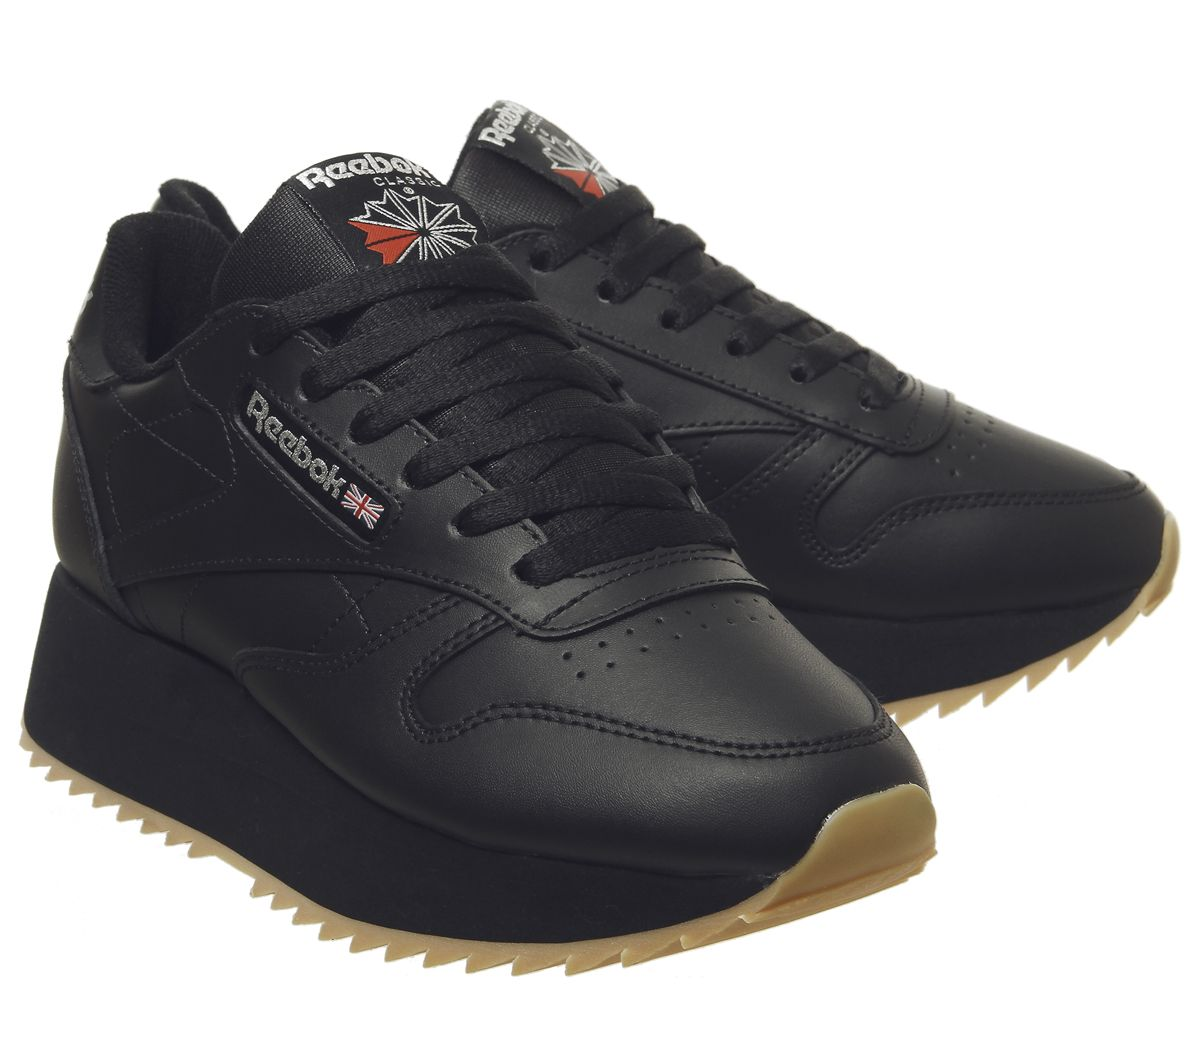 2472cbdc29560 Womens Reebok Classic Leather Double Trainers Black Gum Silver ...